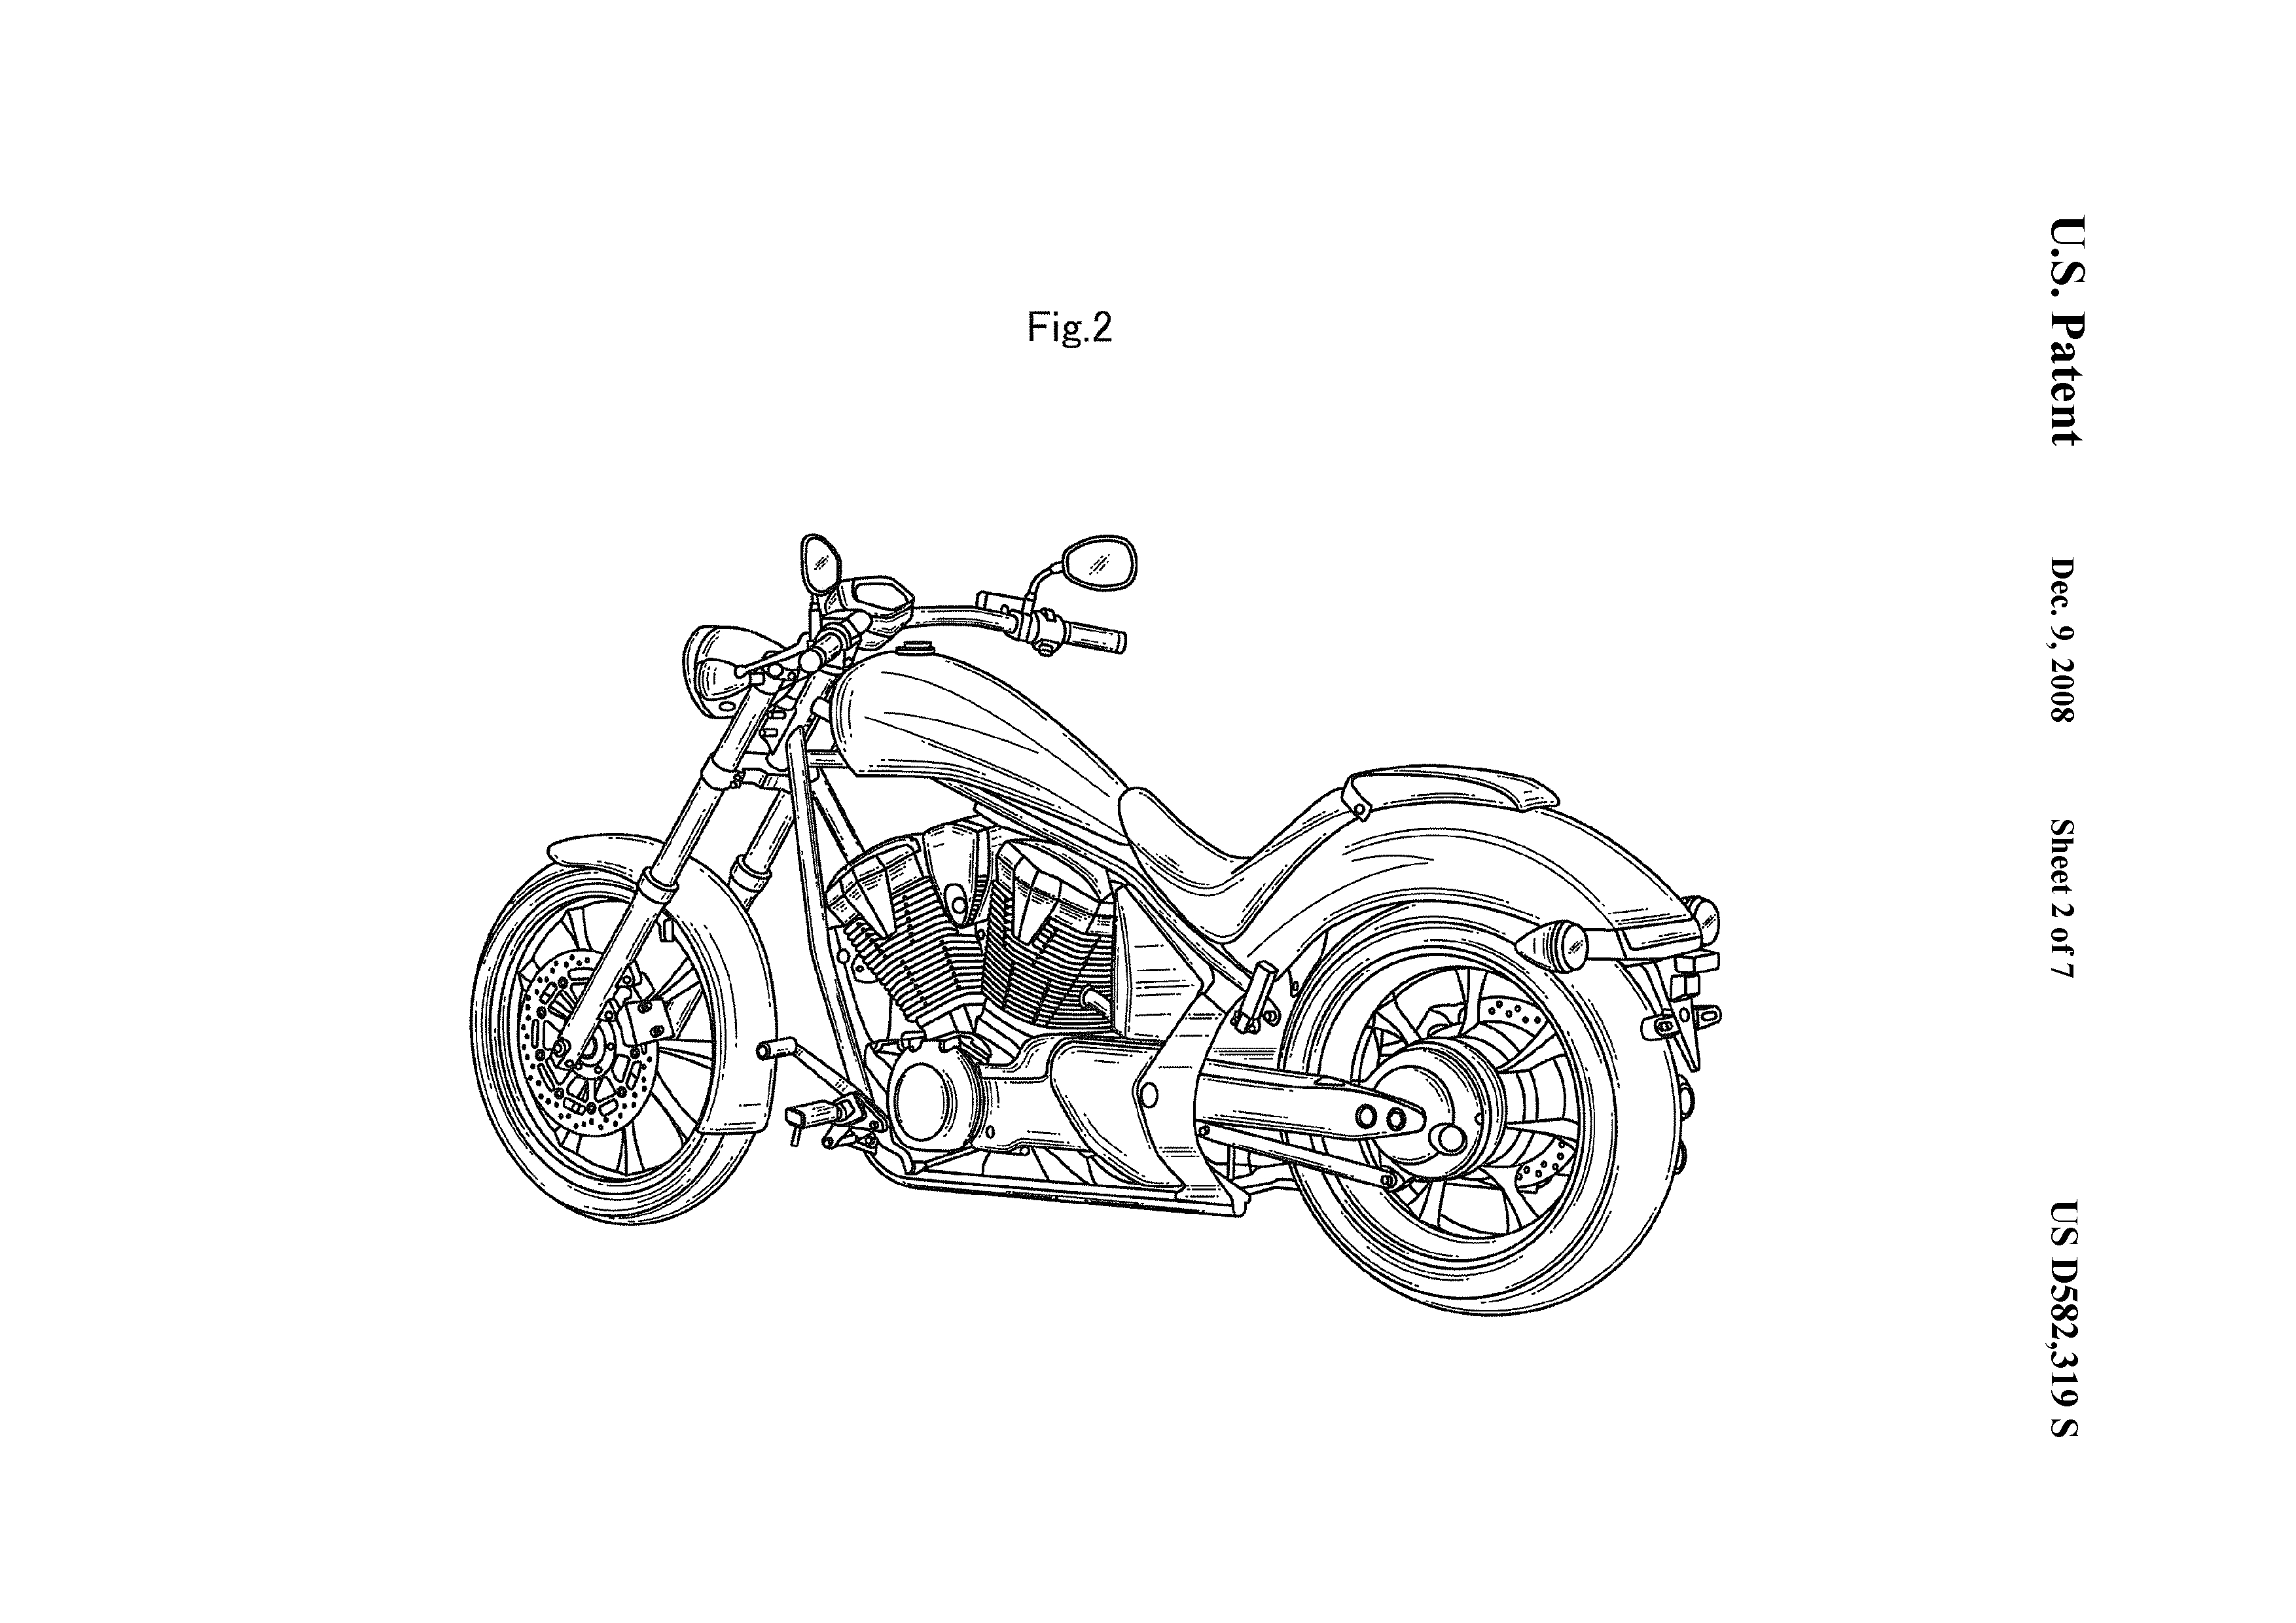 Honda Reveals Patent Images Of Their Fury Gallery 279108